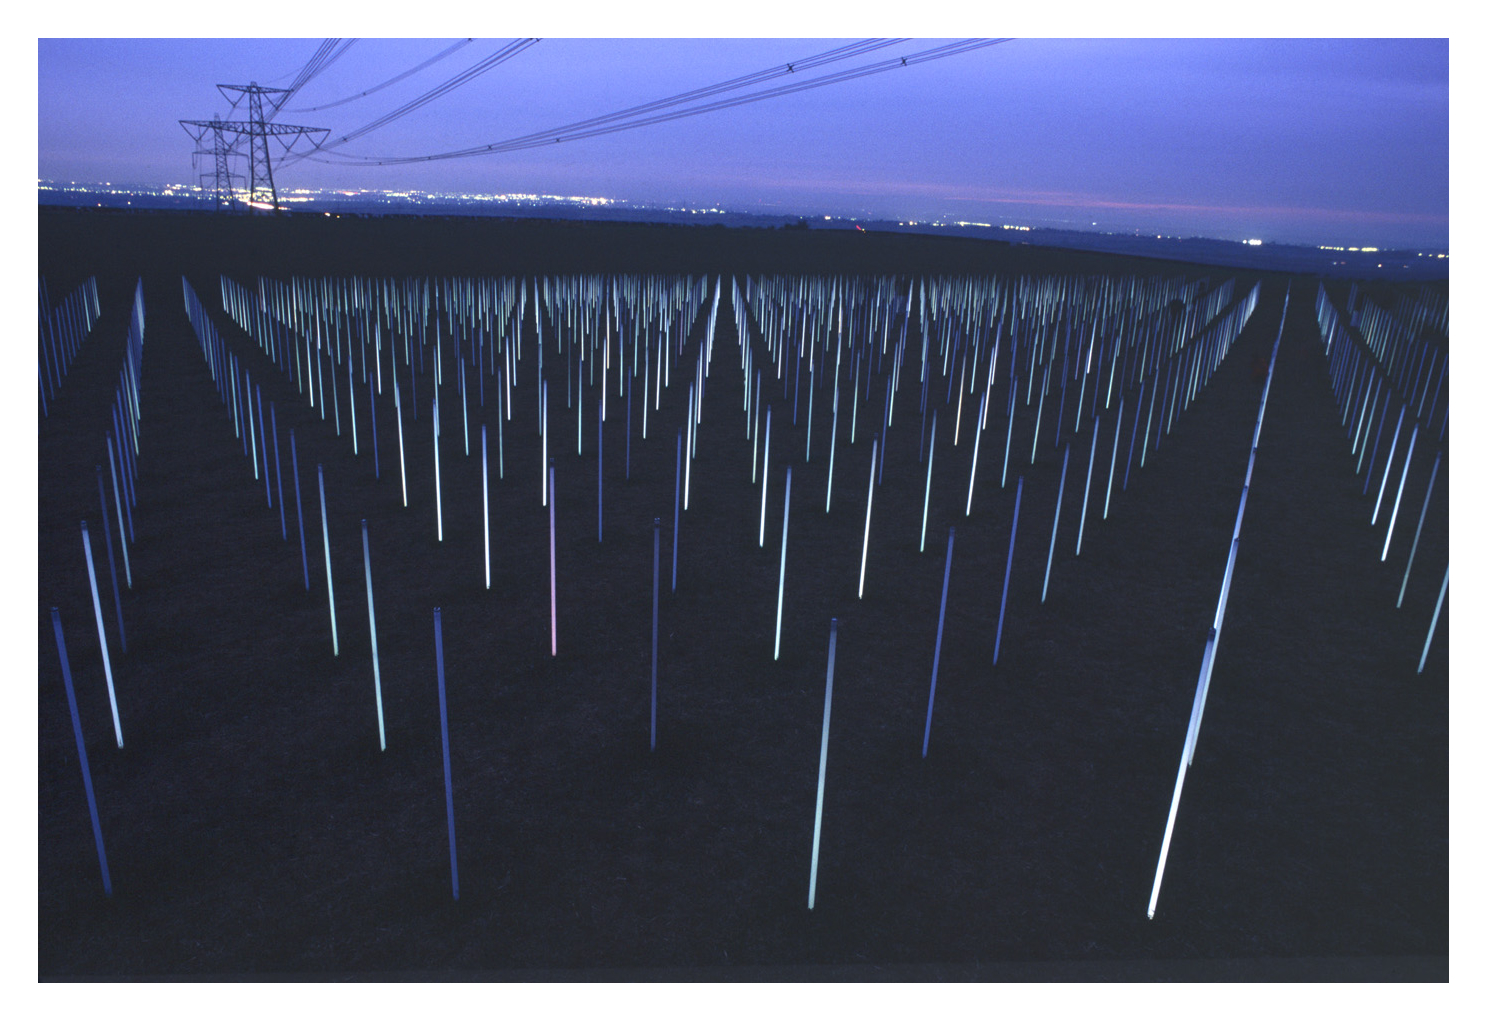 Photo of 'The field' by Richard Box showing many lights under a powerline